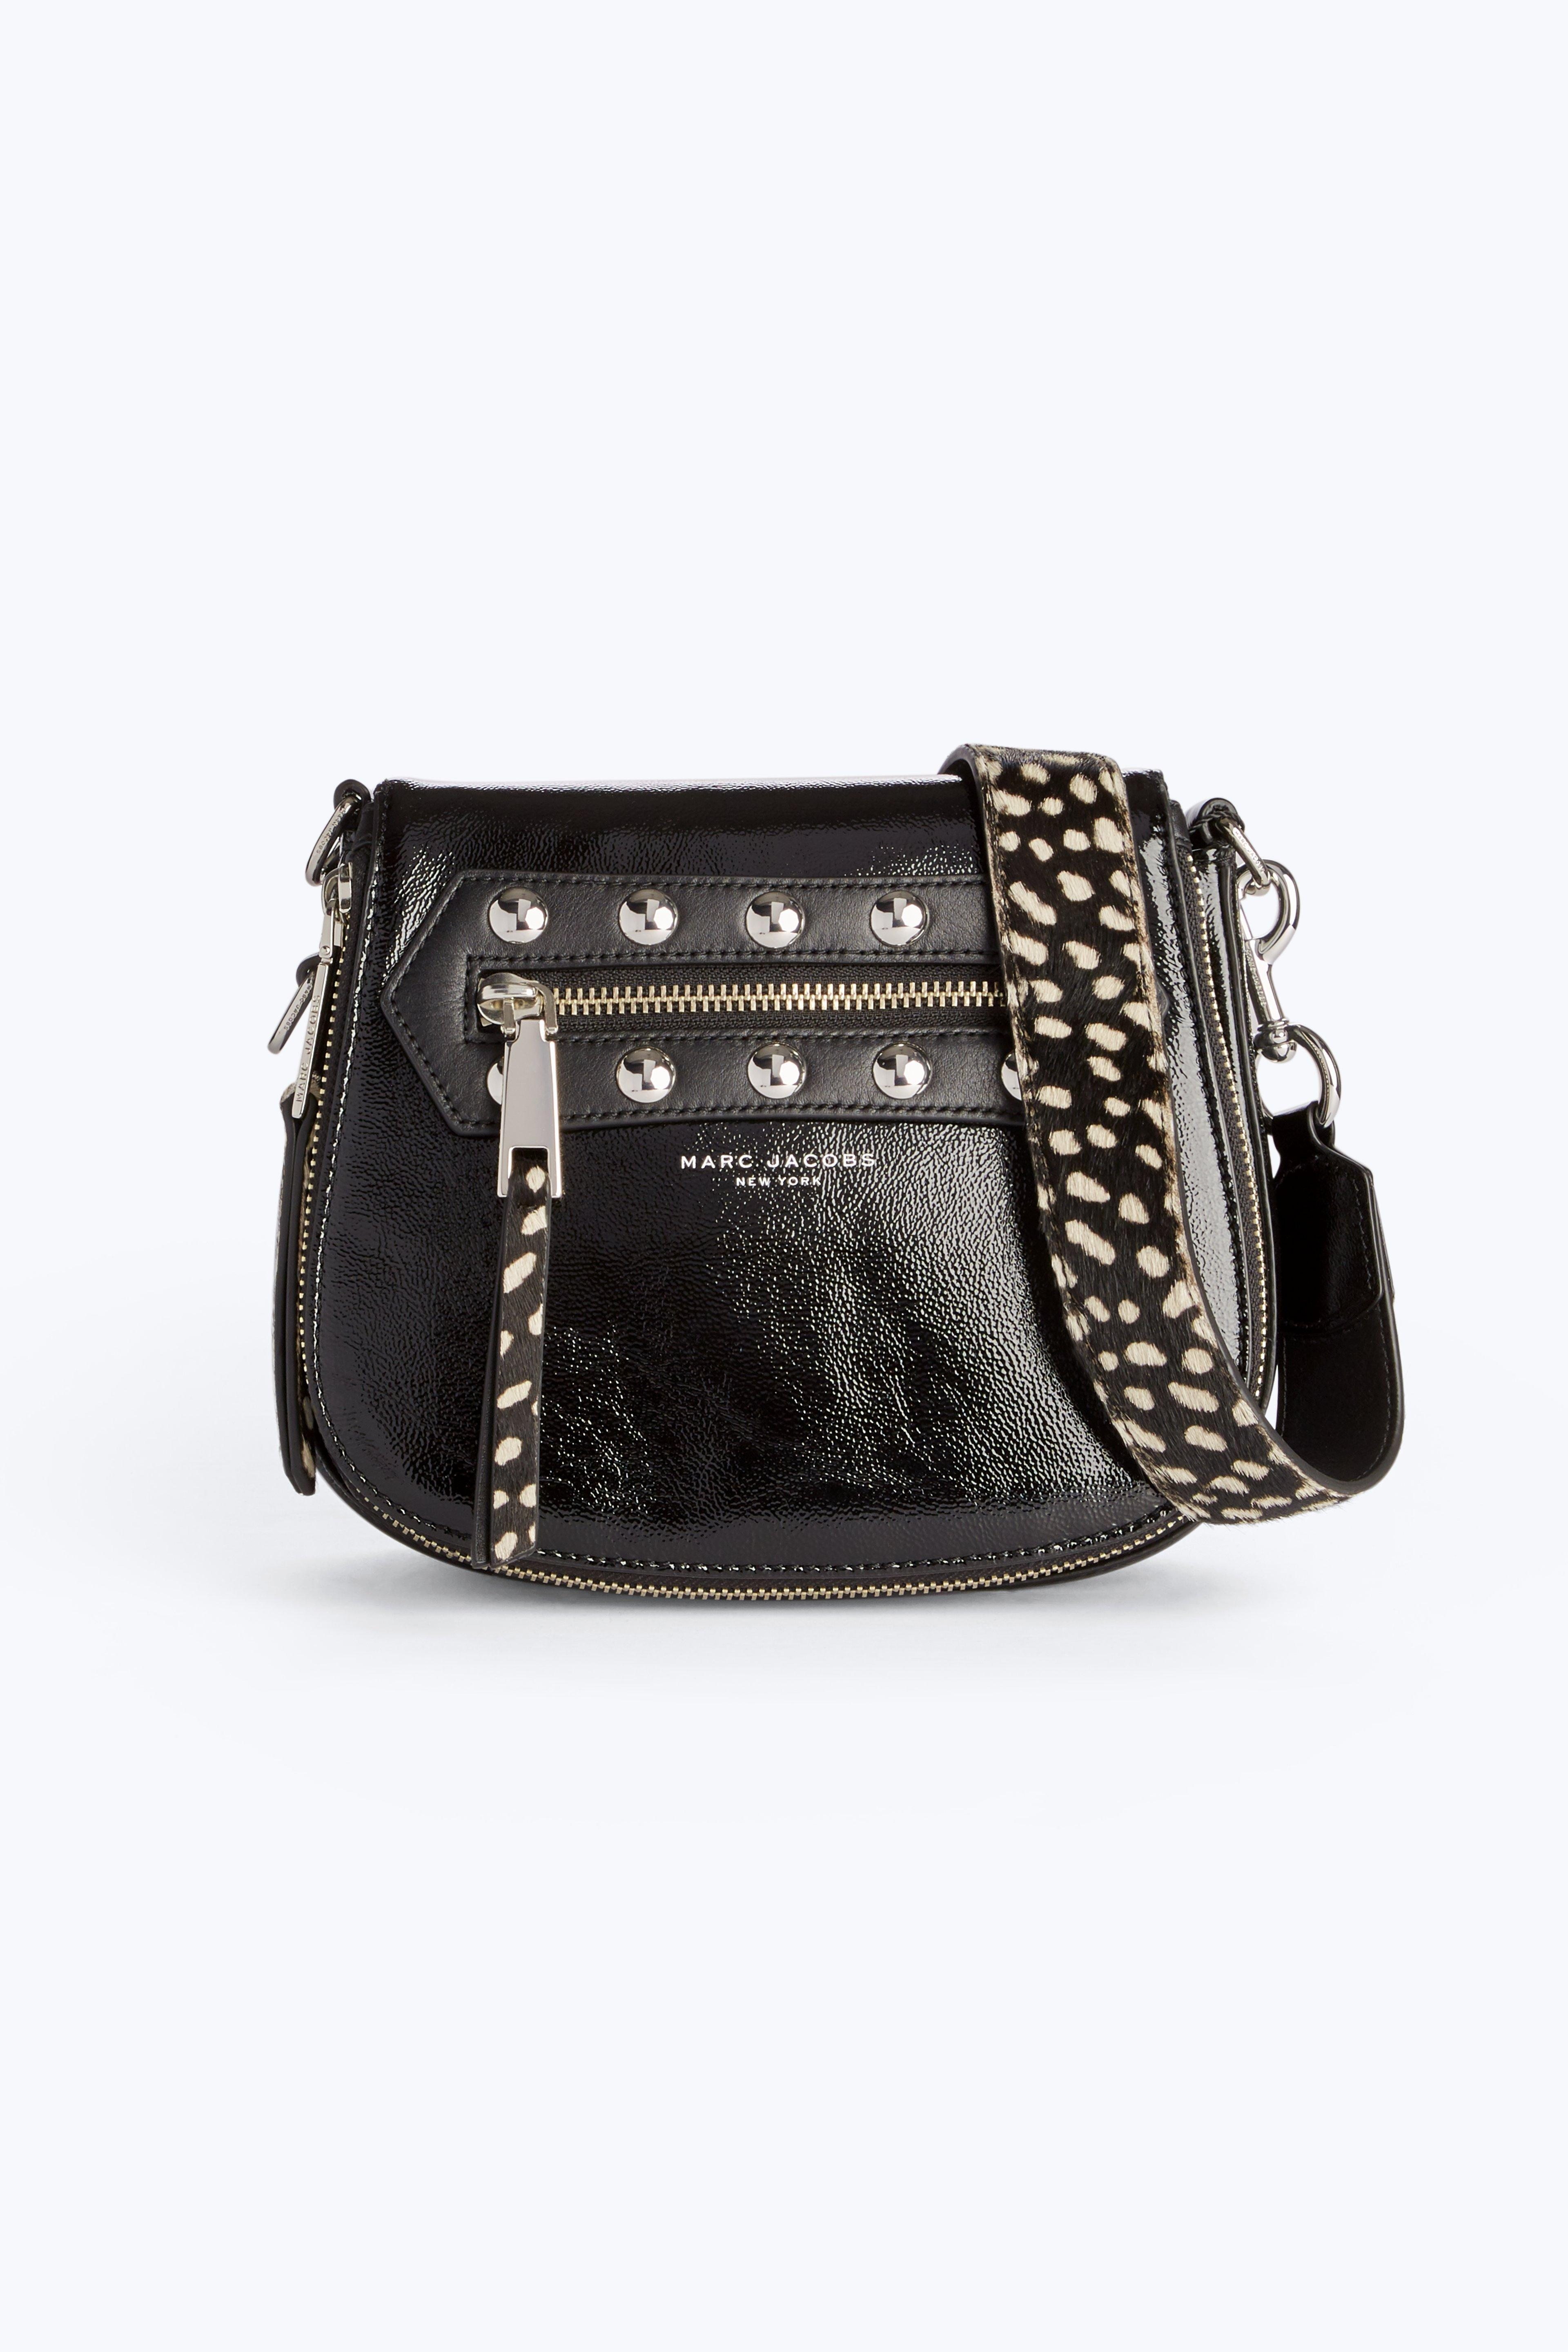 Marc Jacobs Nomad Studded Calf Hair Strap Small Patent Leather Saddle Bag In Black Multi